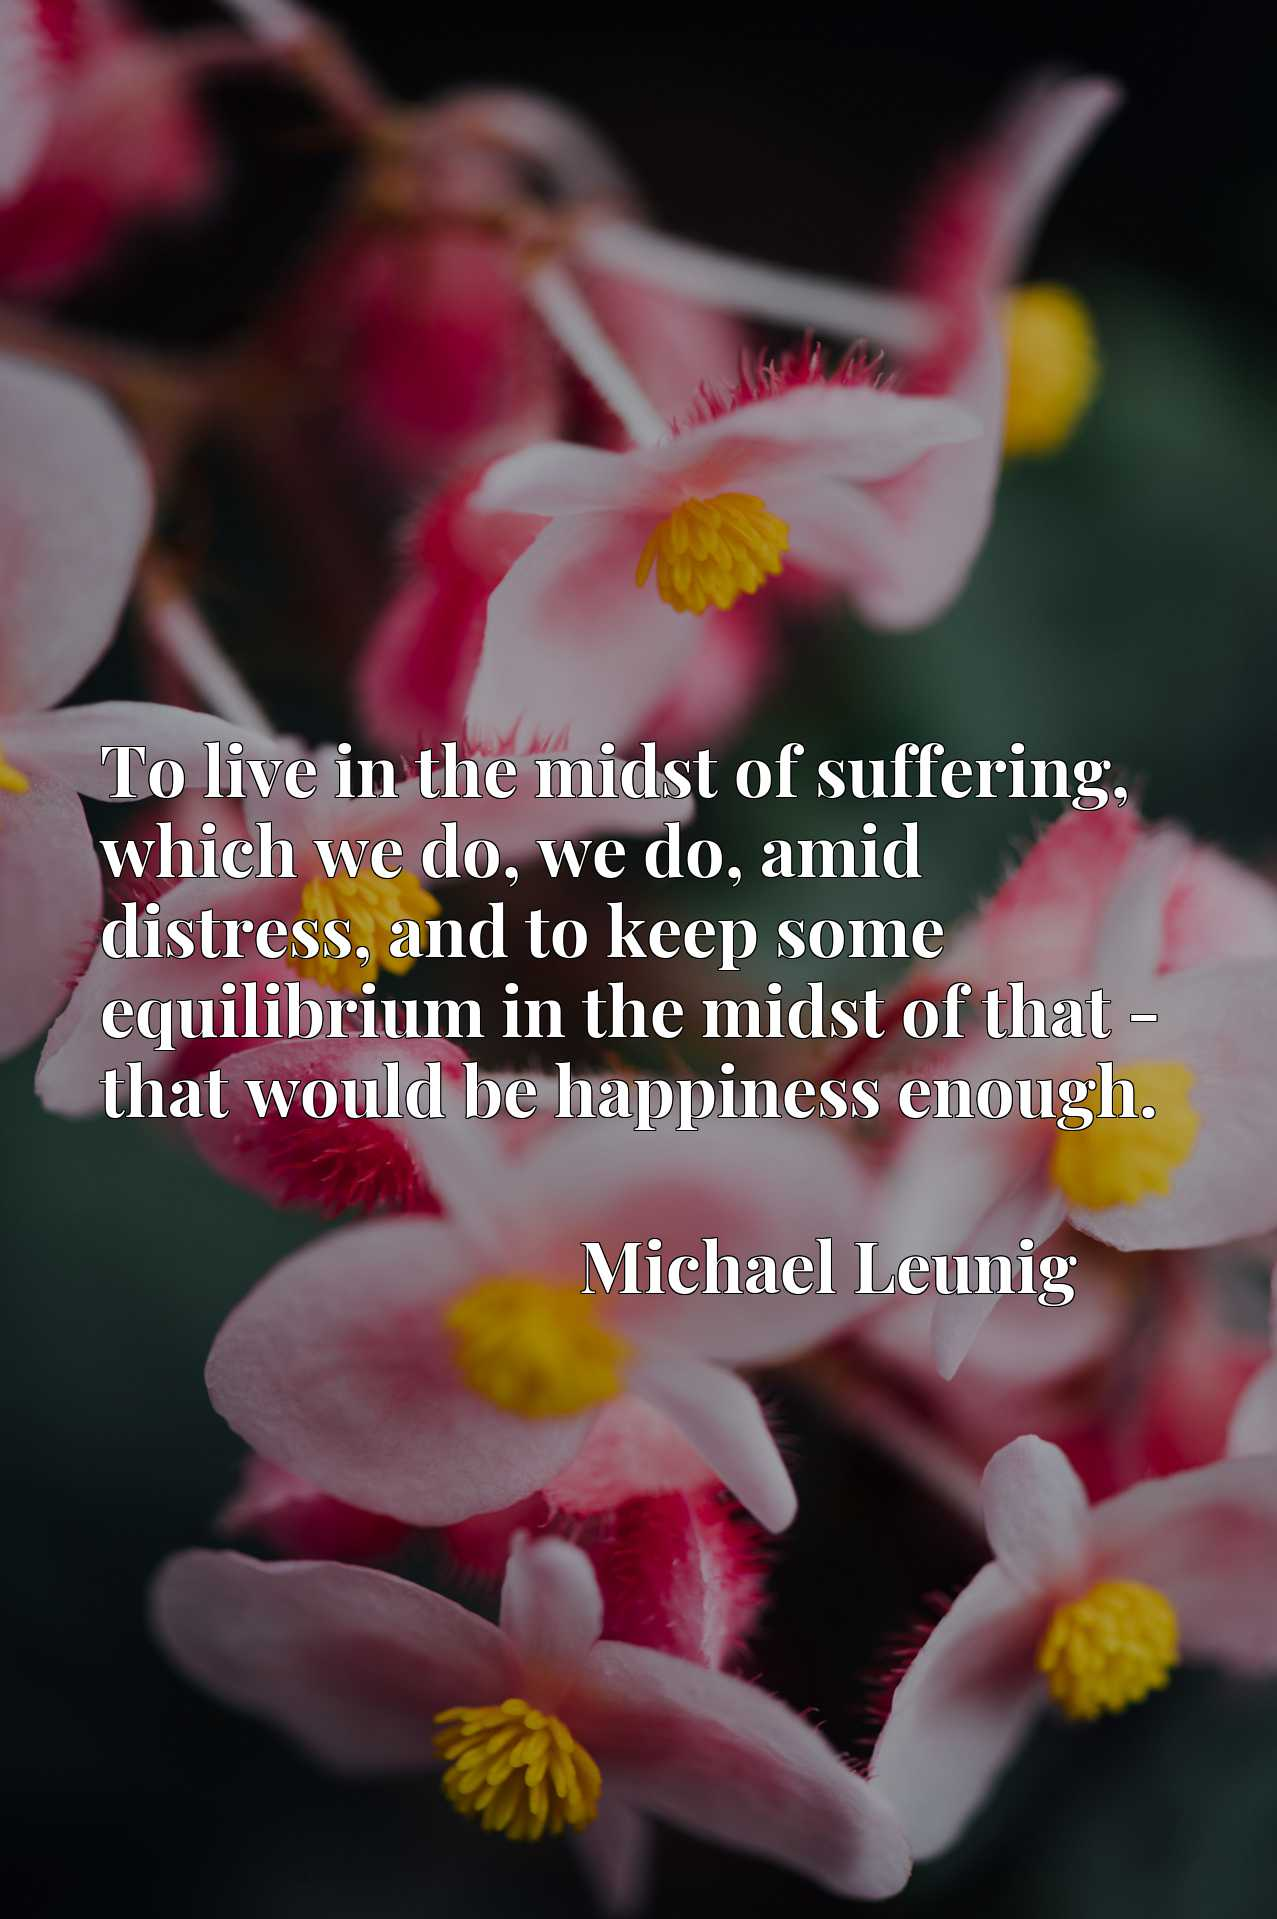 To live in the midst of suffering, which we do, we do, amid distress, and to keep some equilibrium in the midst of that - that would be happiness enough.